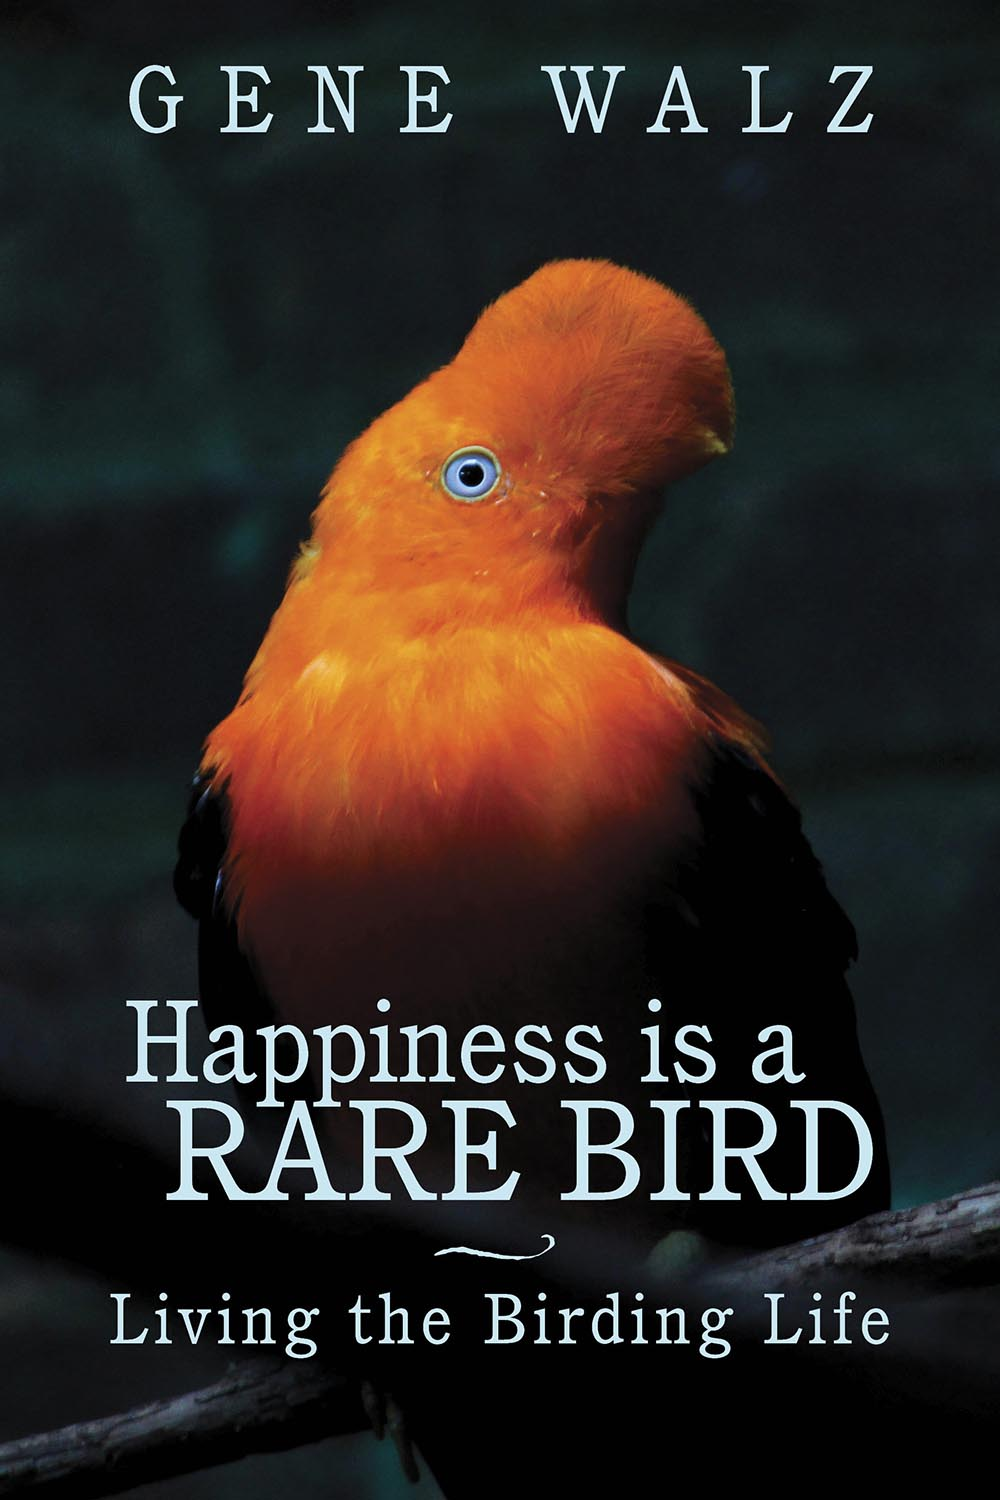 Happiness is a Rare Bird by Gene Walz